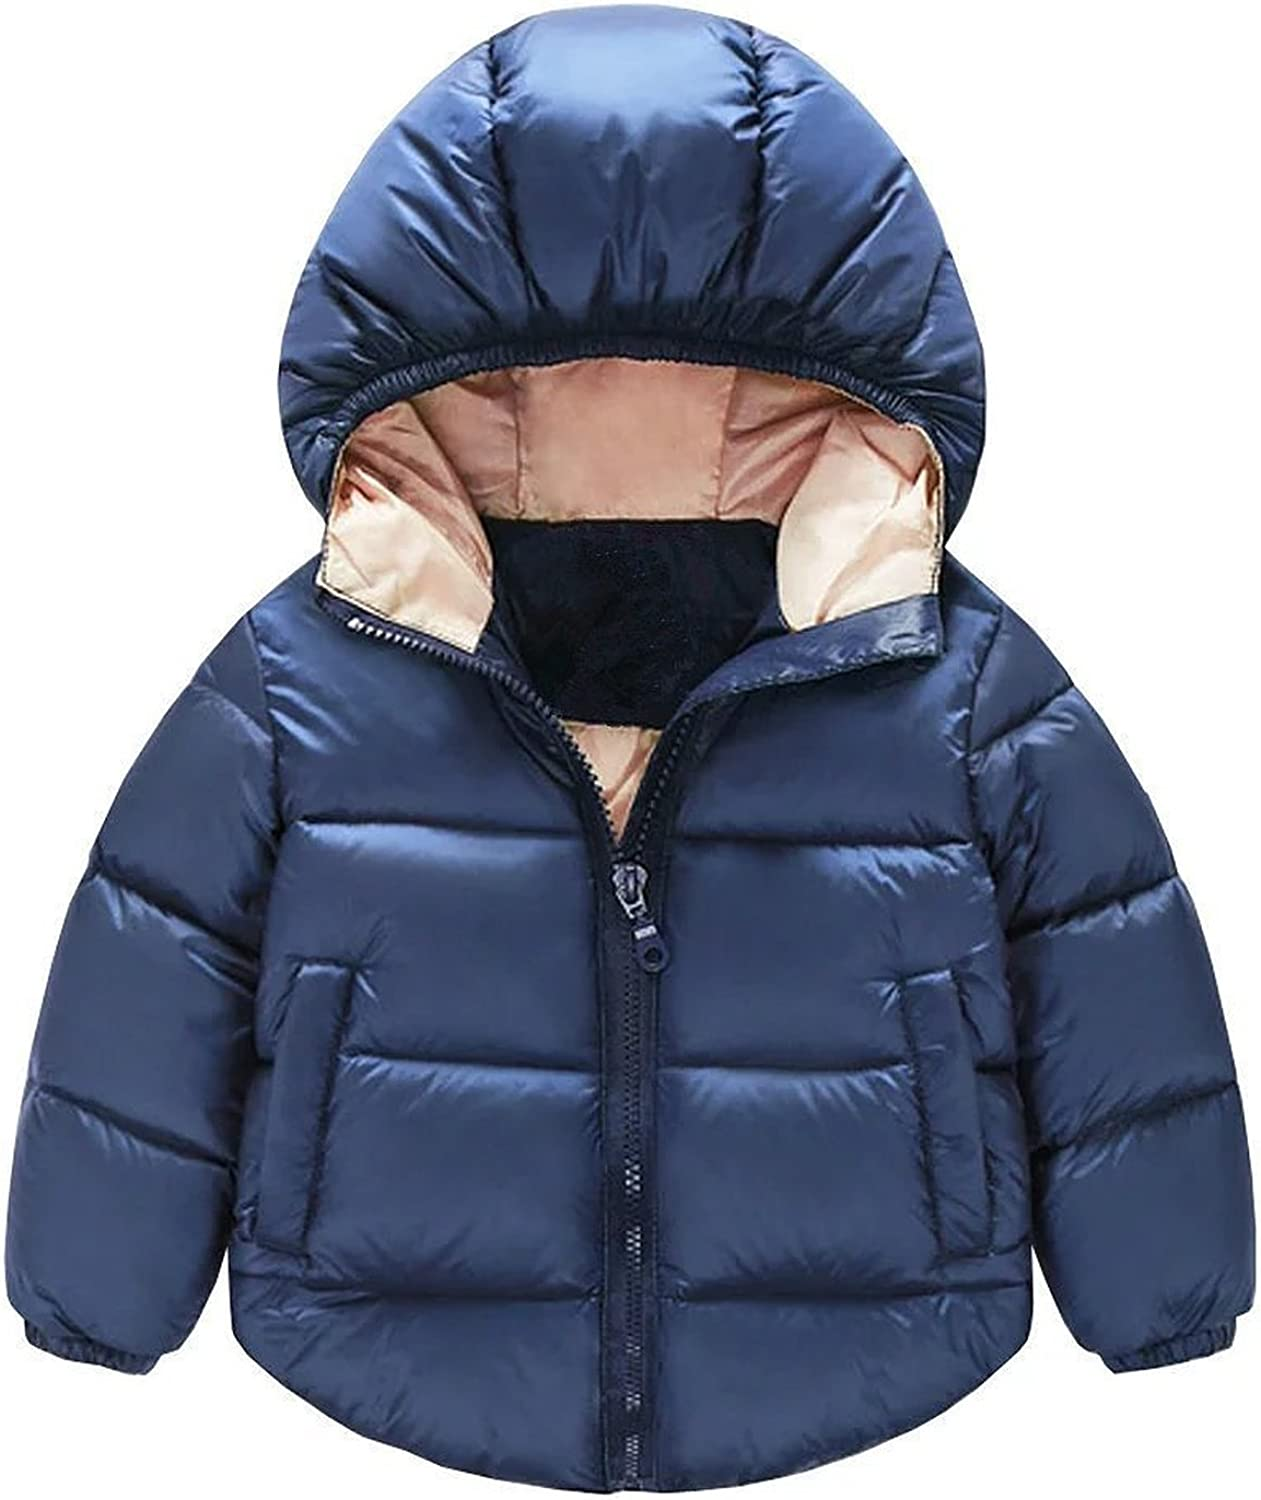 chinatera Baby Fleece Warm Vests Unisex Toddler Cotton Waistcoat Winter Jackets